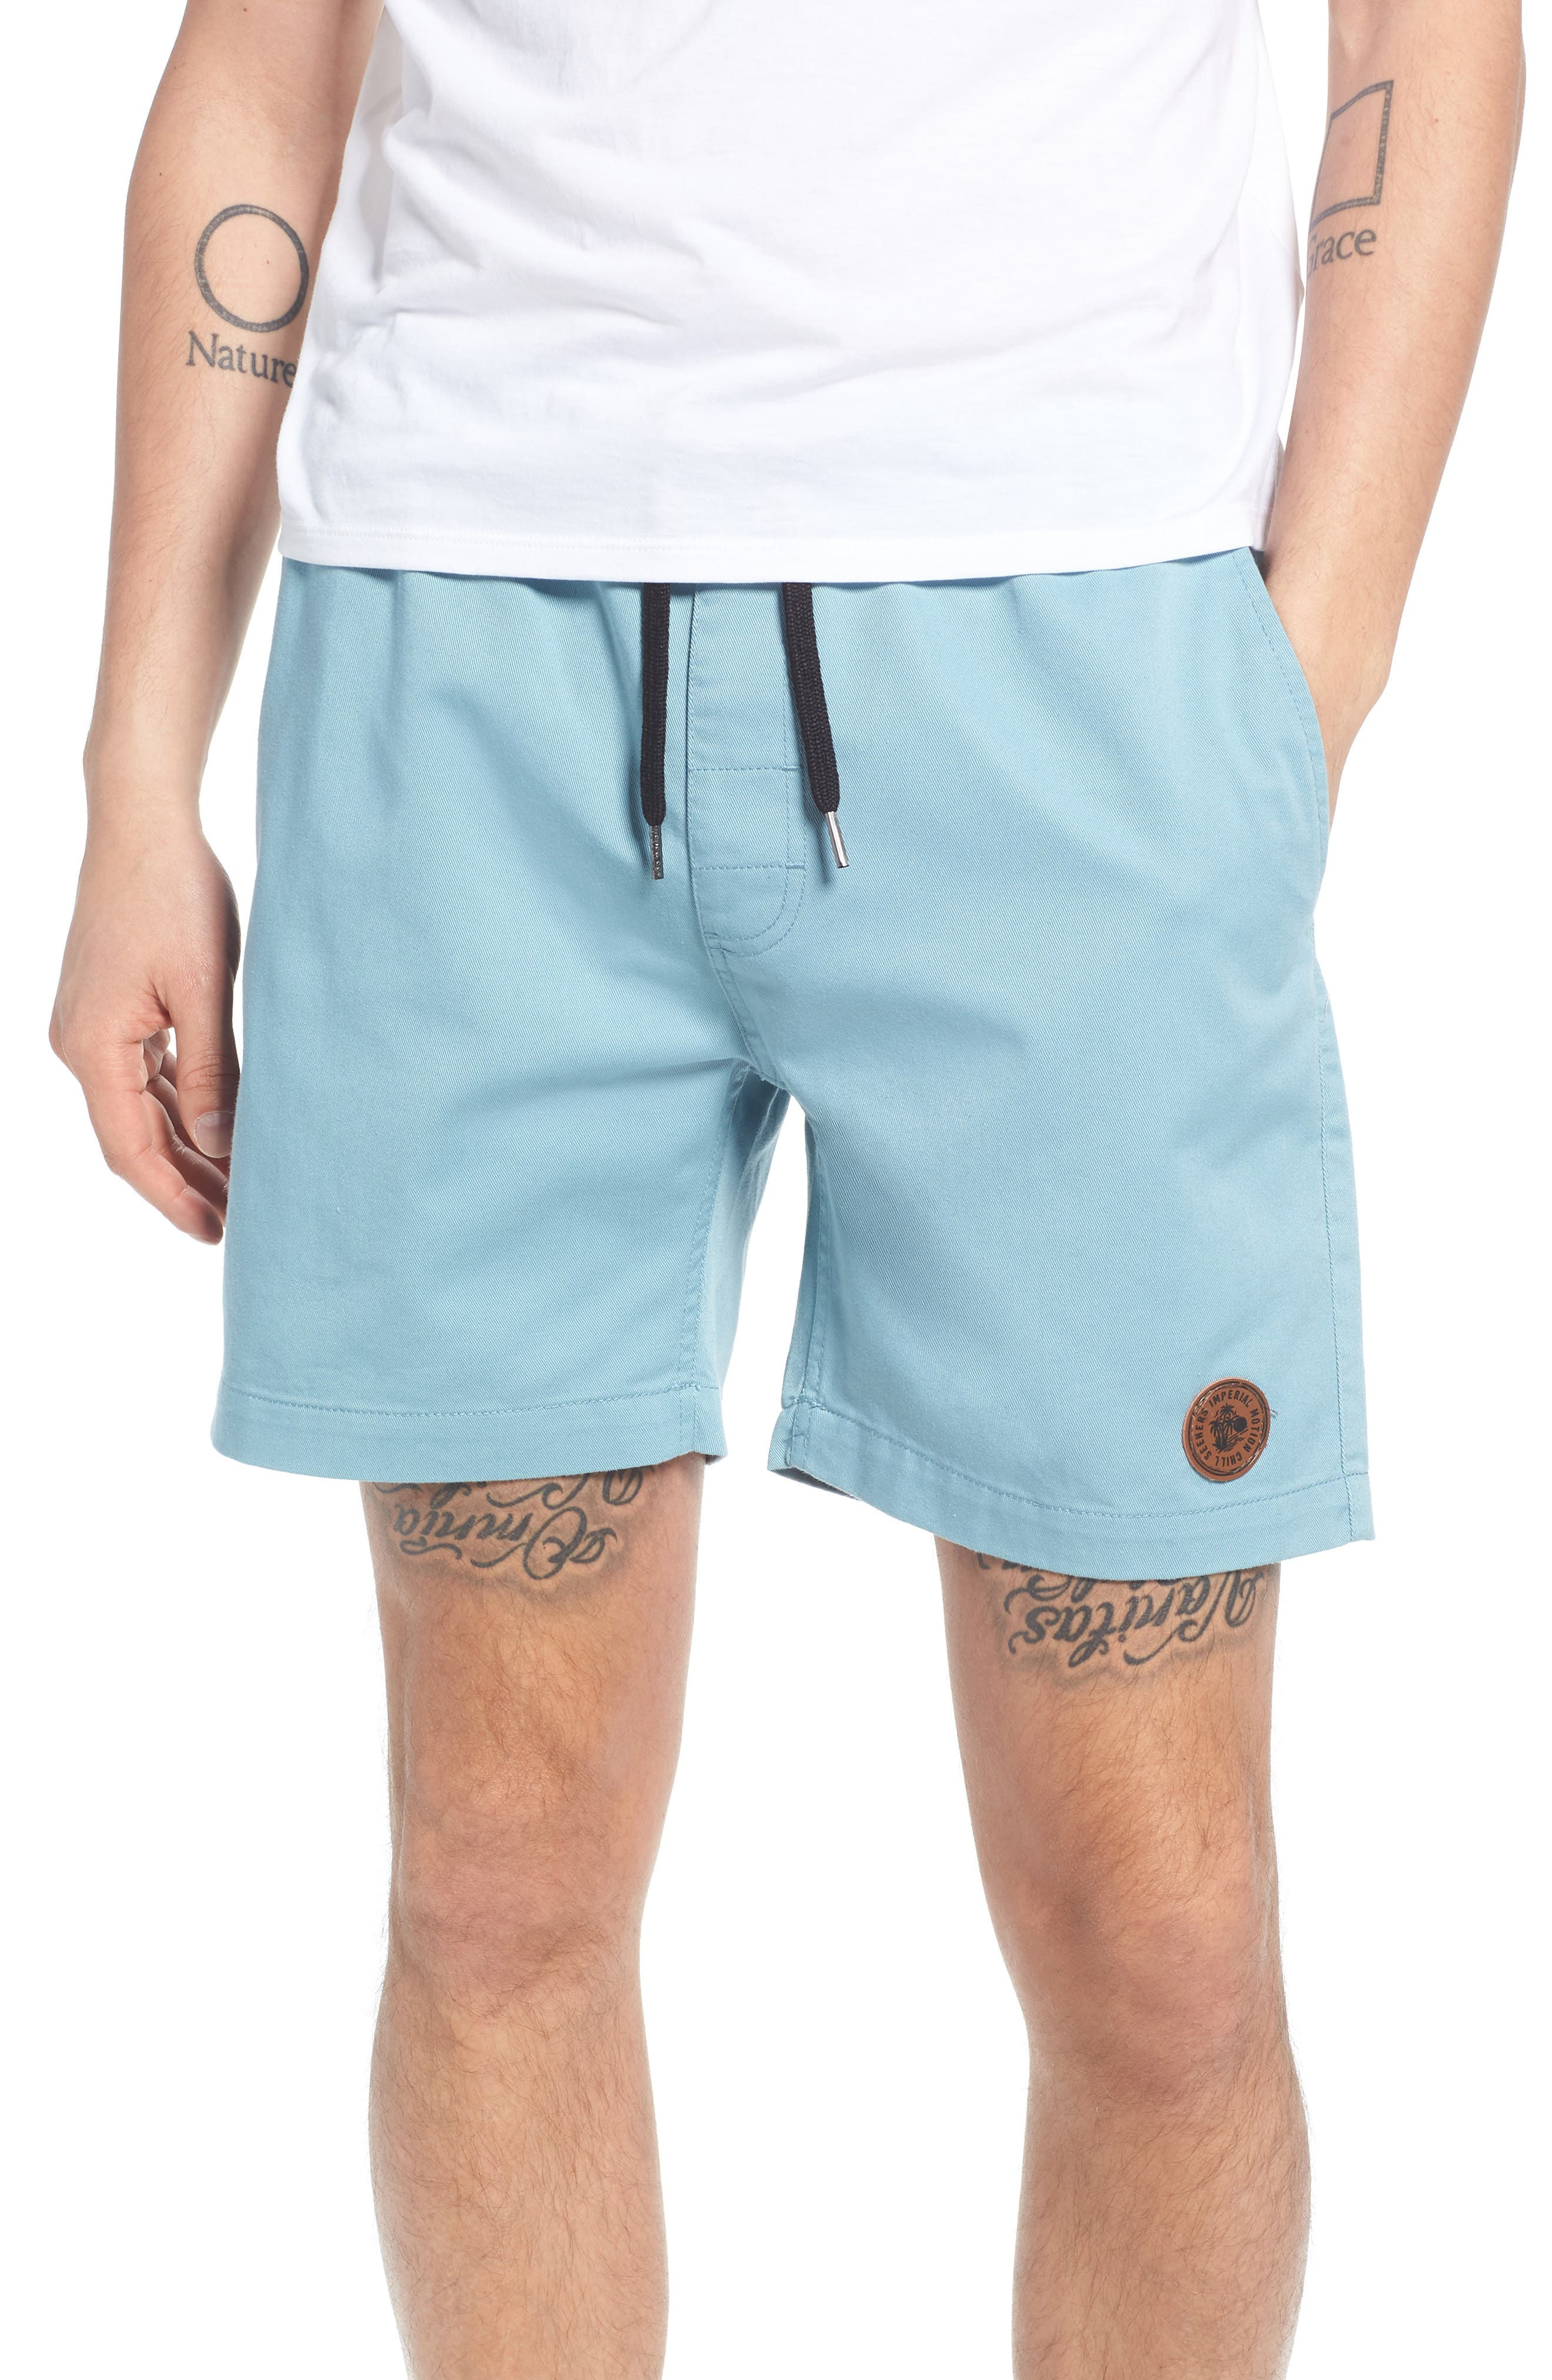 Seeker Shorts,                         Main,                         color, Light Blue